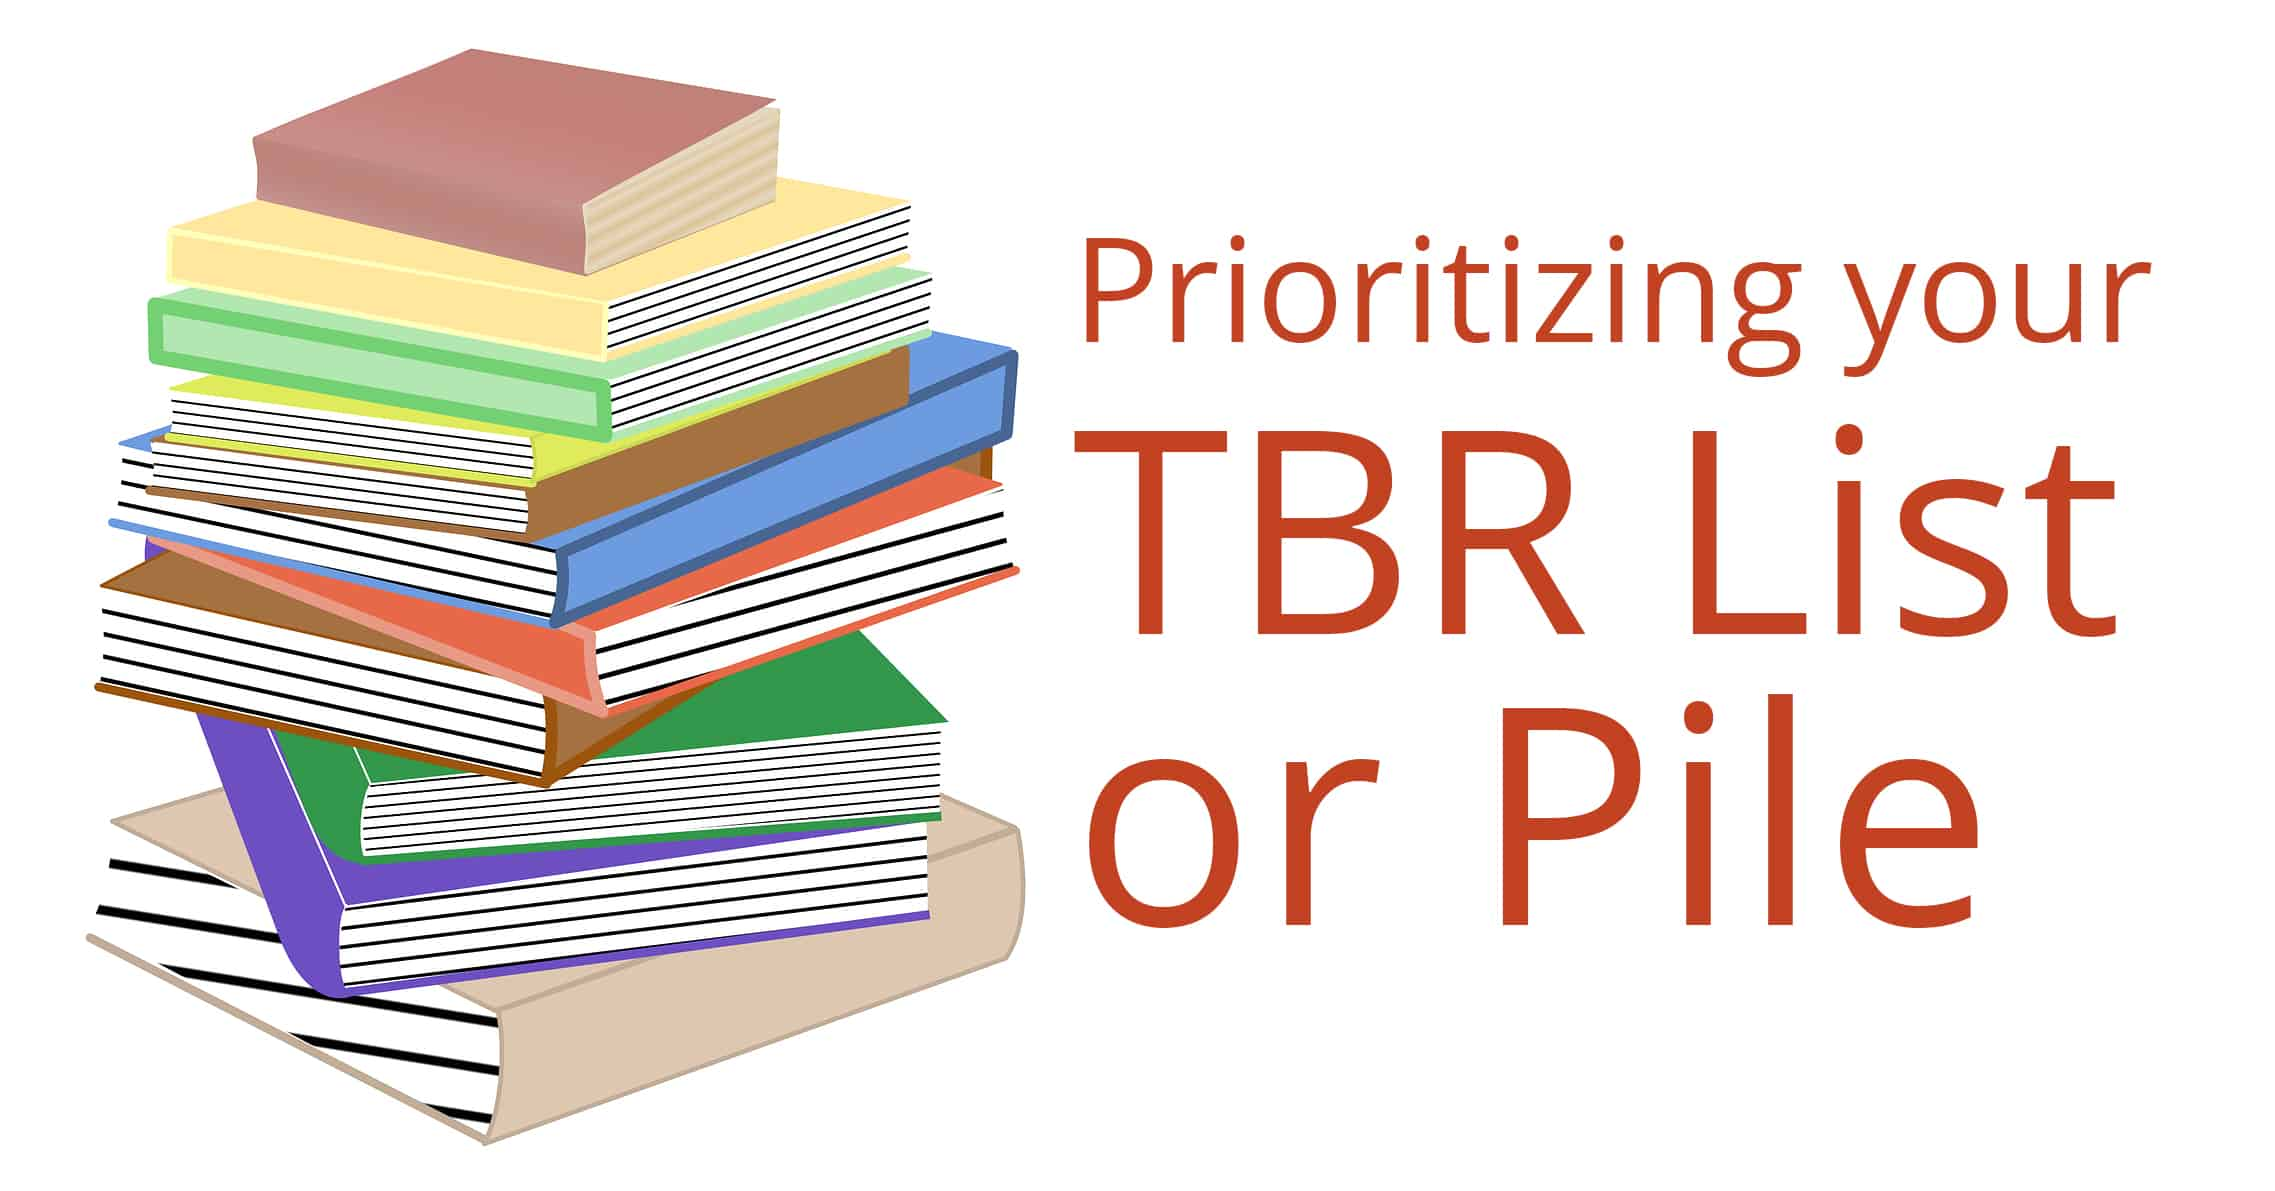 Prioritizing your TBR List or Pile